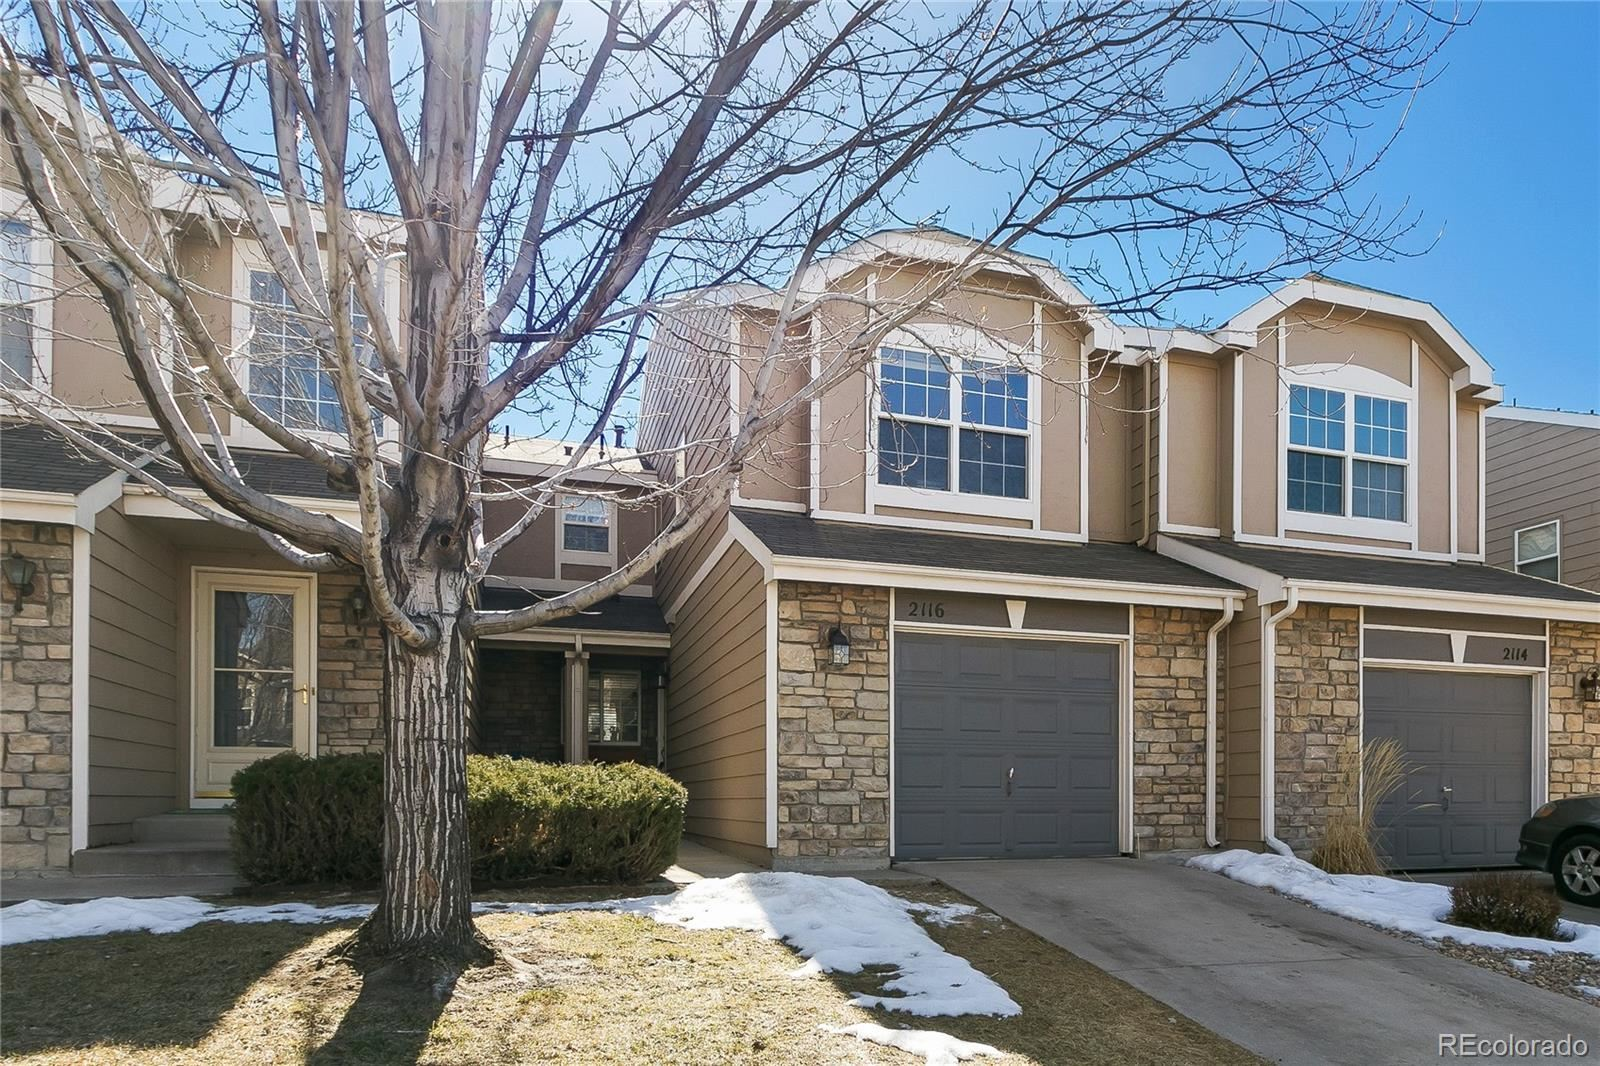 2116 E 103rd Avenue, Thornton, CO 80229 - #: 2175245